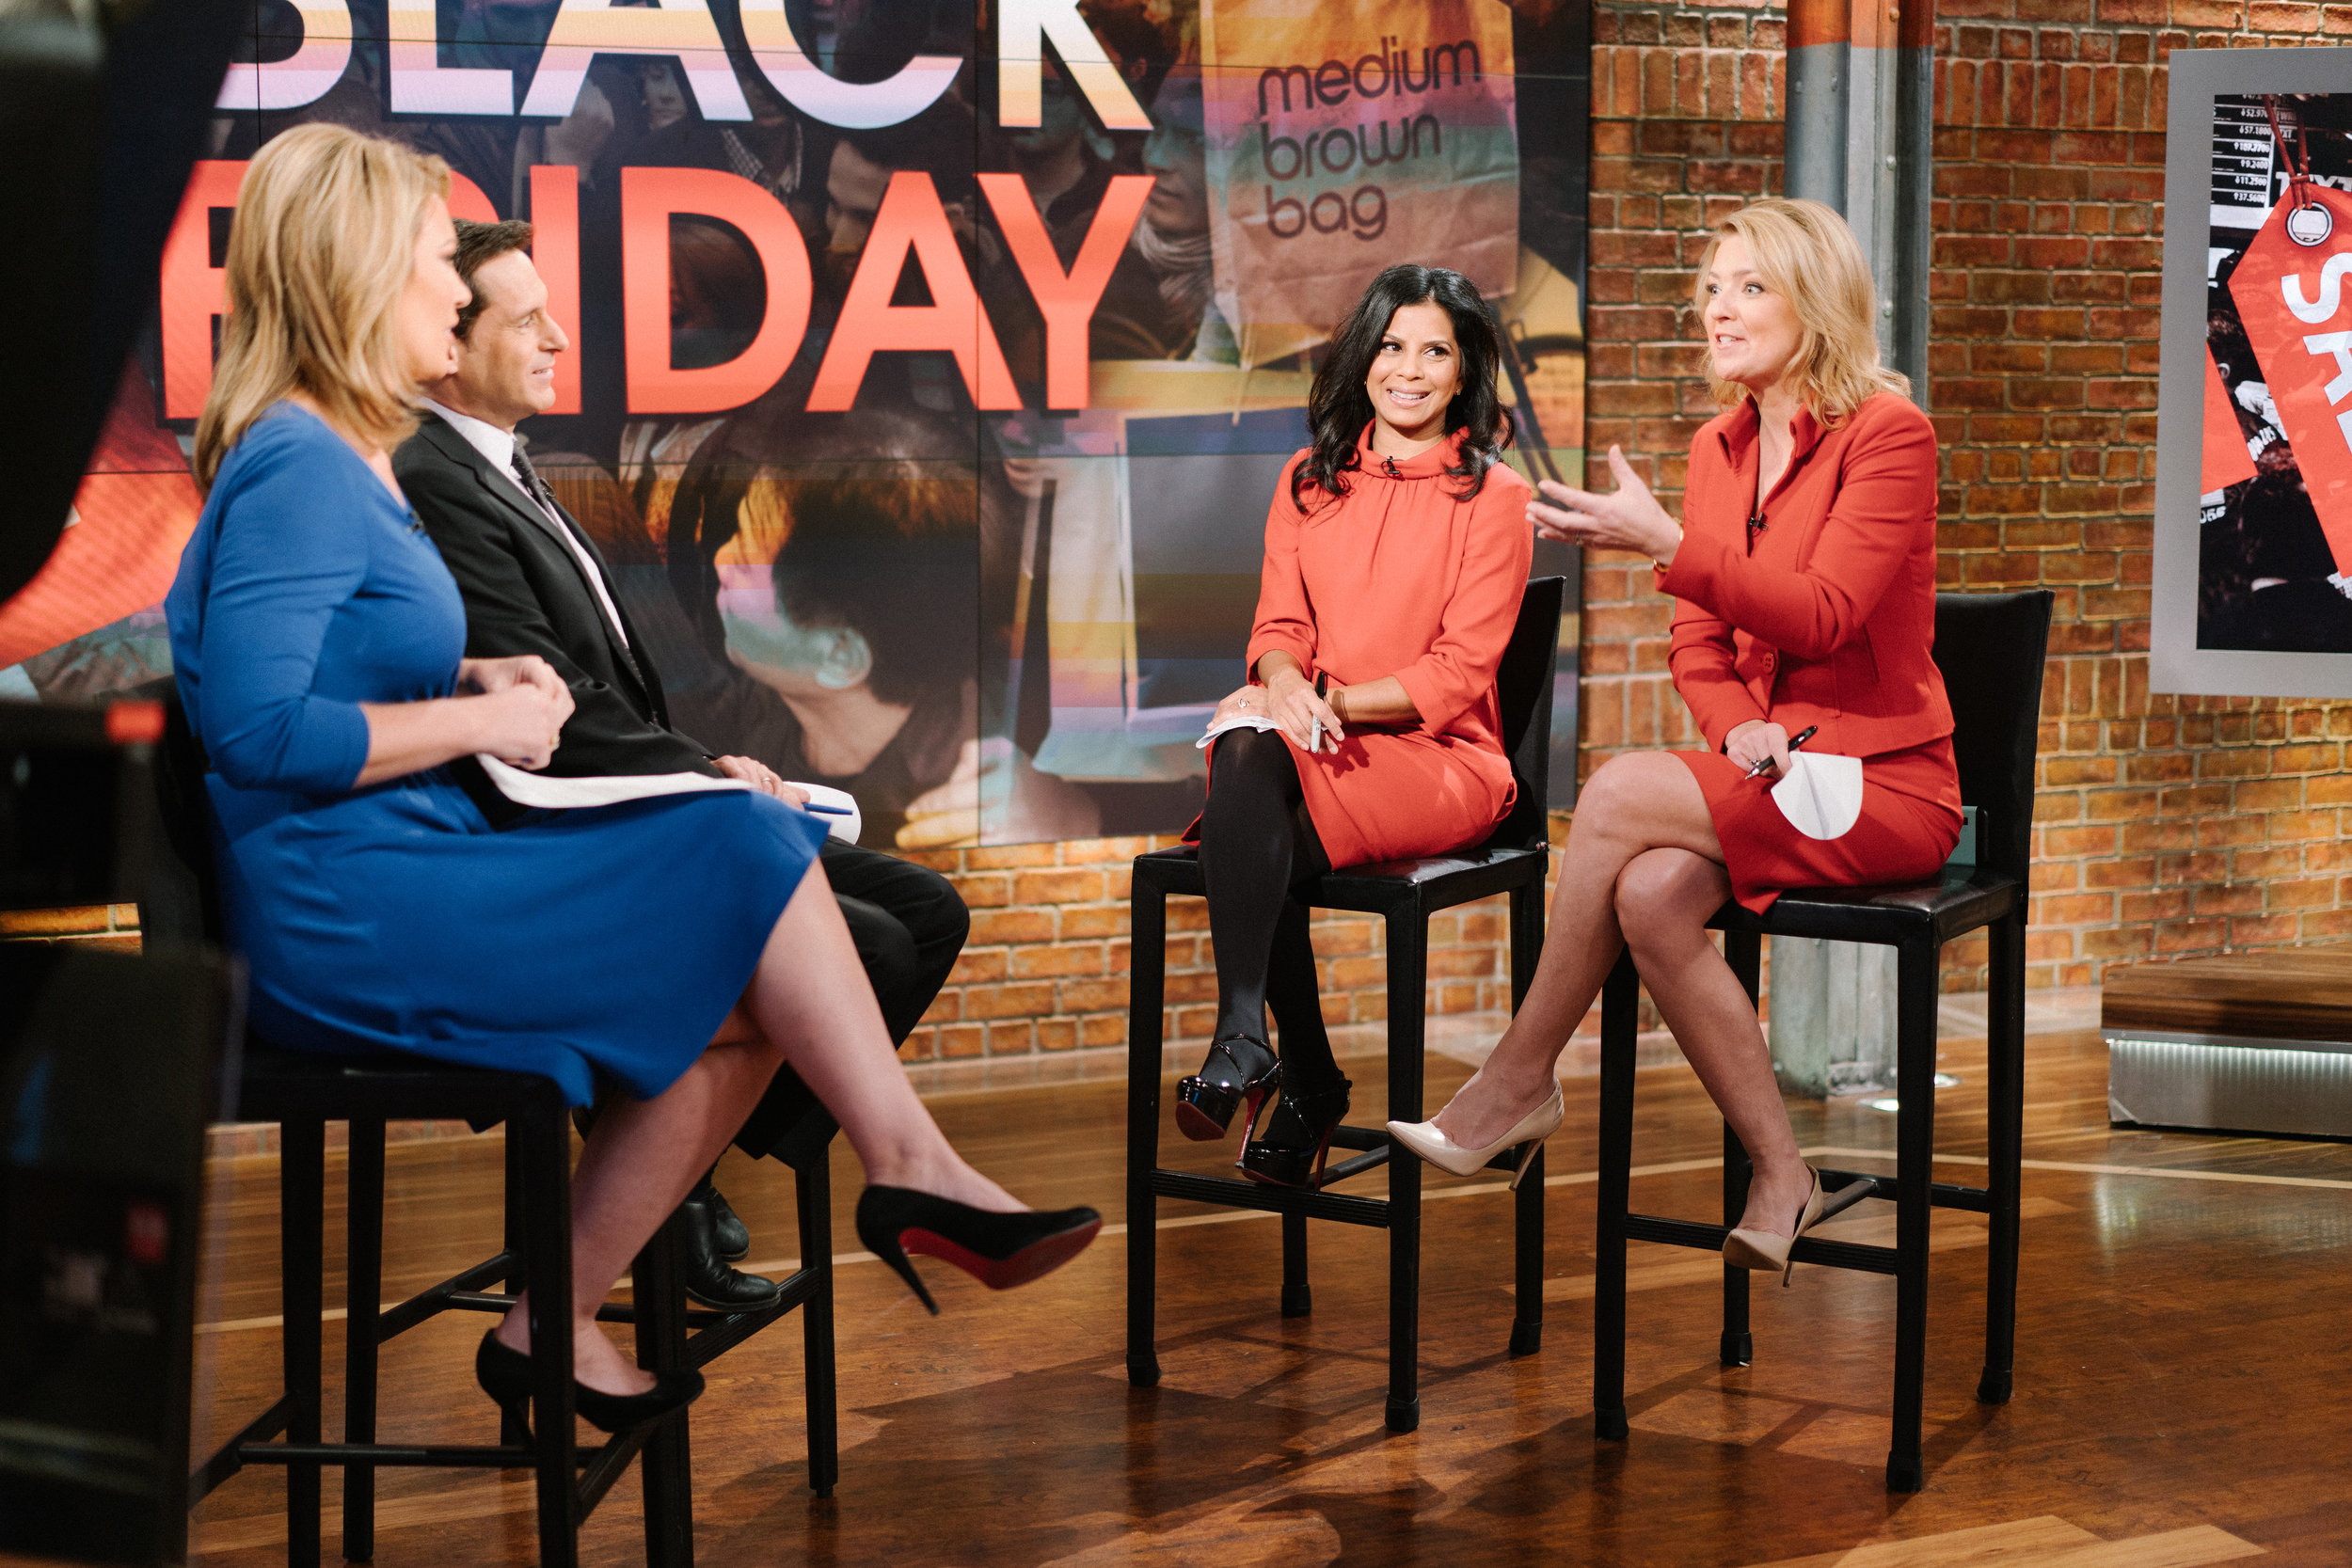 Hitha Herzog discusses Black Friday with Jon Berman and Brooke Baldwin on CNN's New Day on November 25th, 2016.